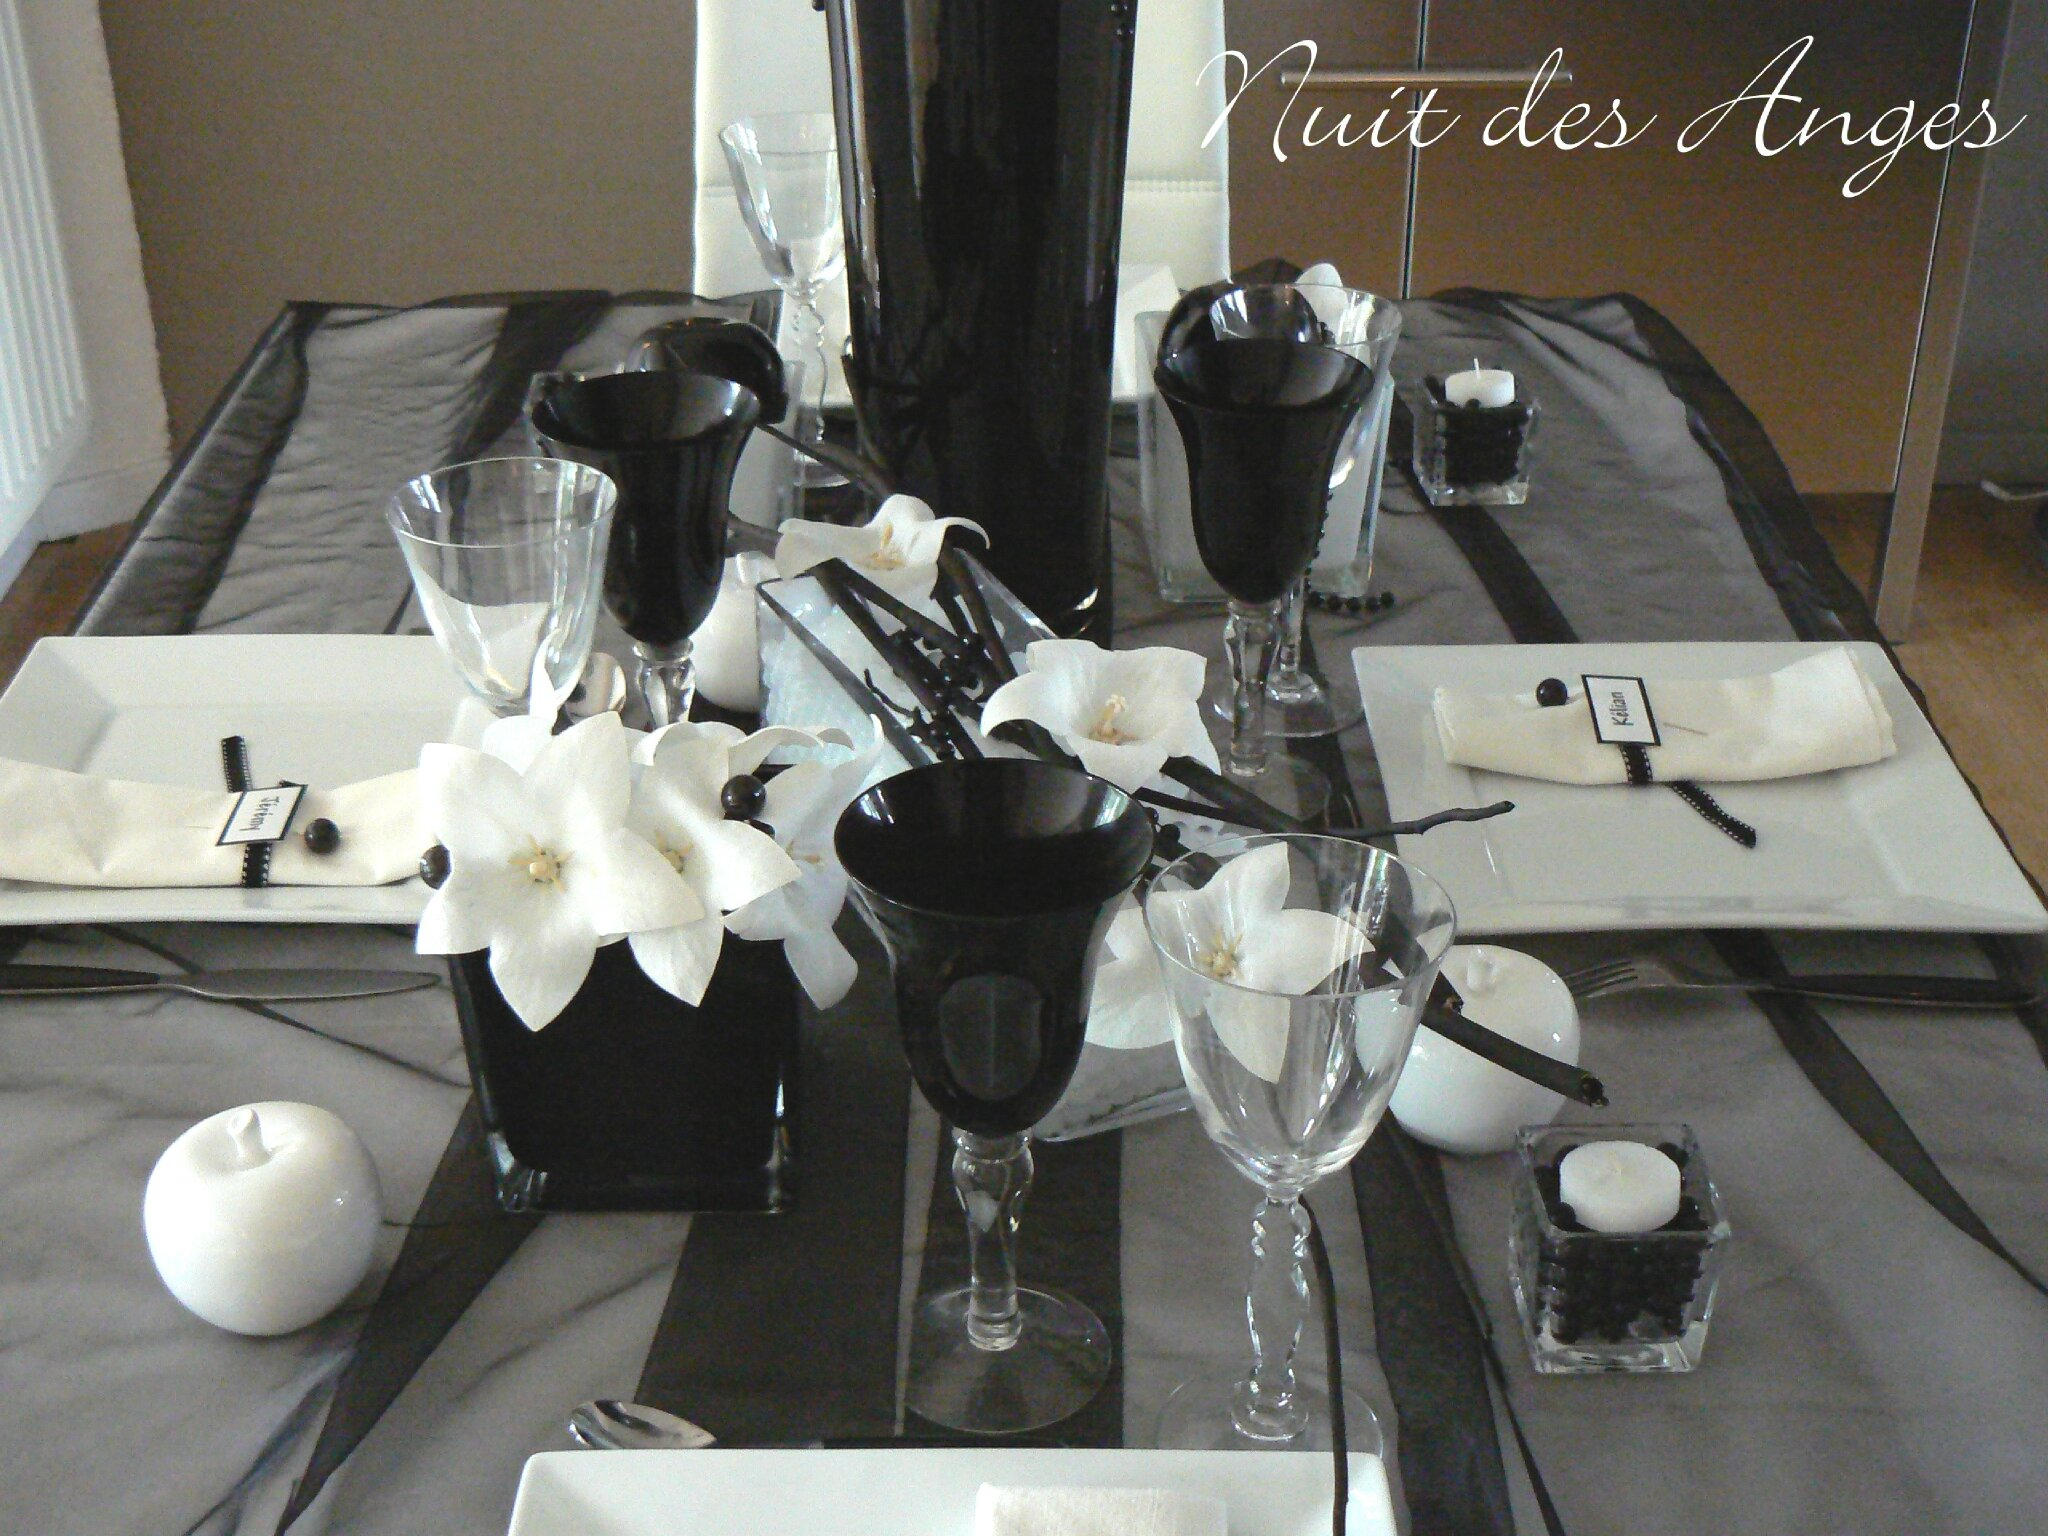 nuit des anges d coratrice de mariage d coration de table noir et blanc 002 photo de. Black Bedroom Furniture Sets. Home Design Ideas